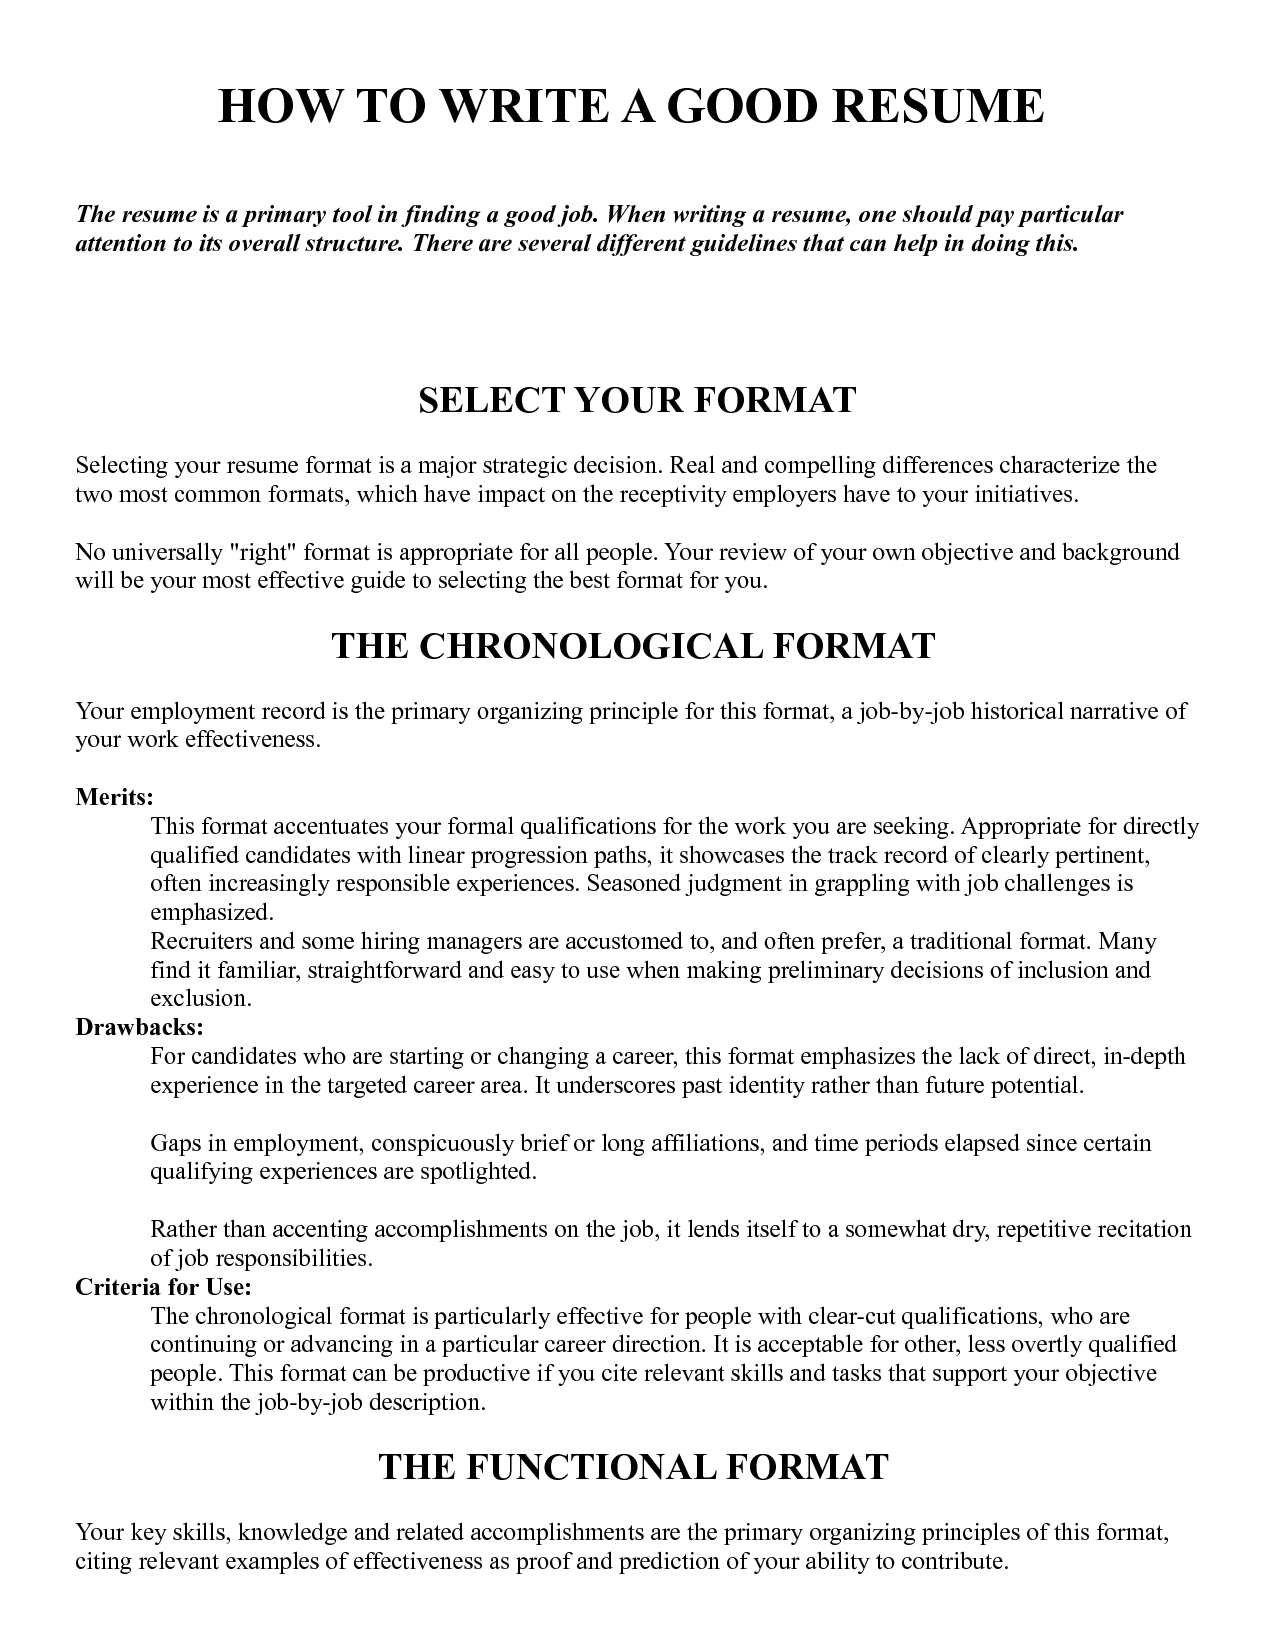 How to Write A Winning Resume Objective (Examples Included)